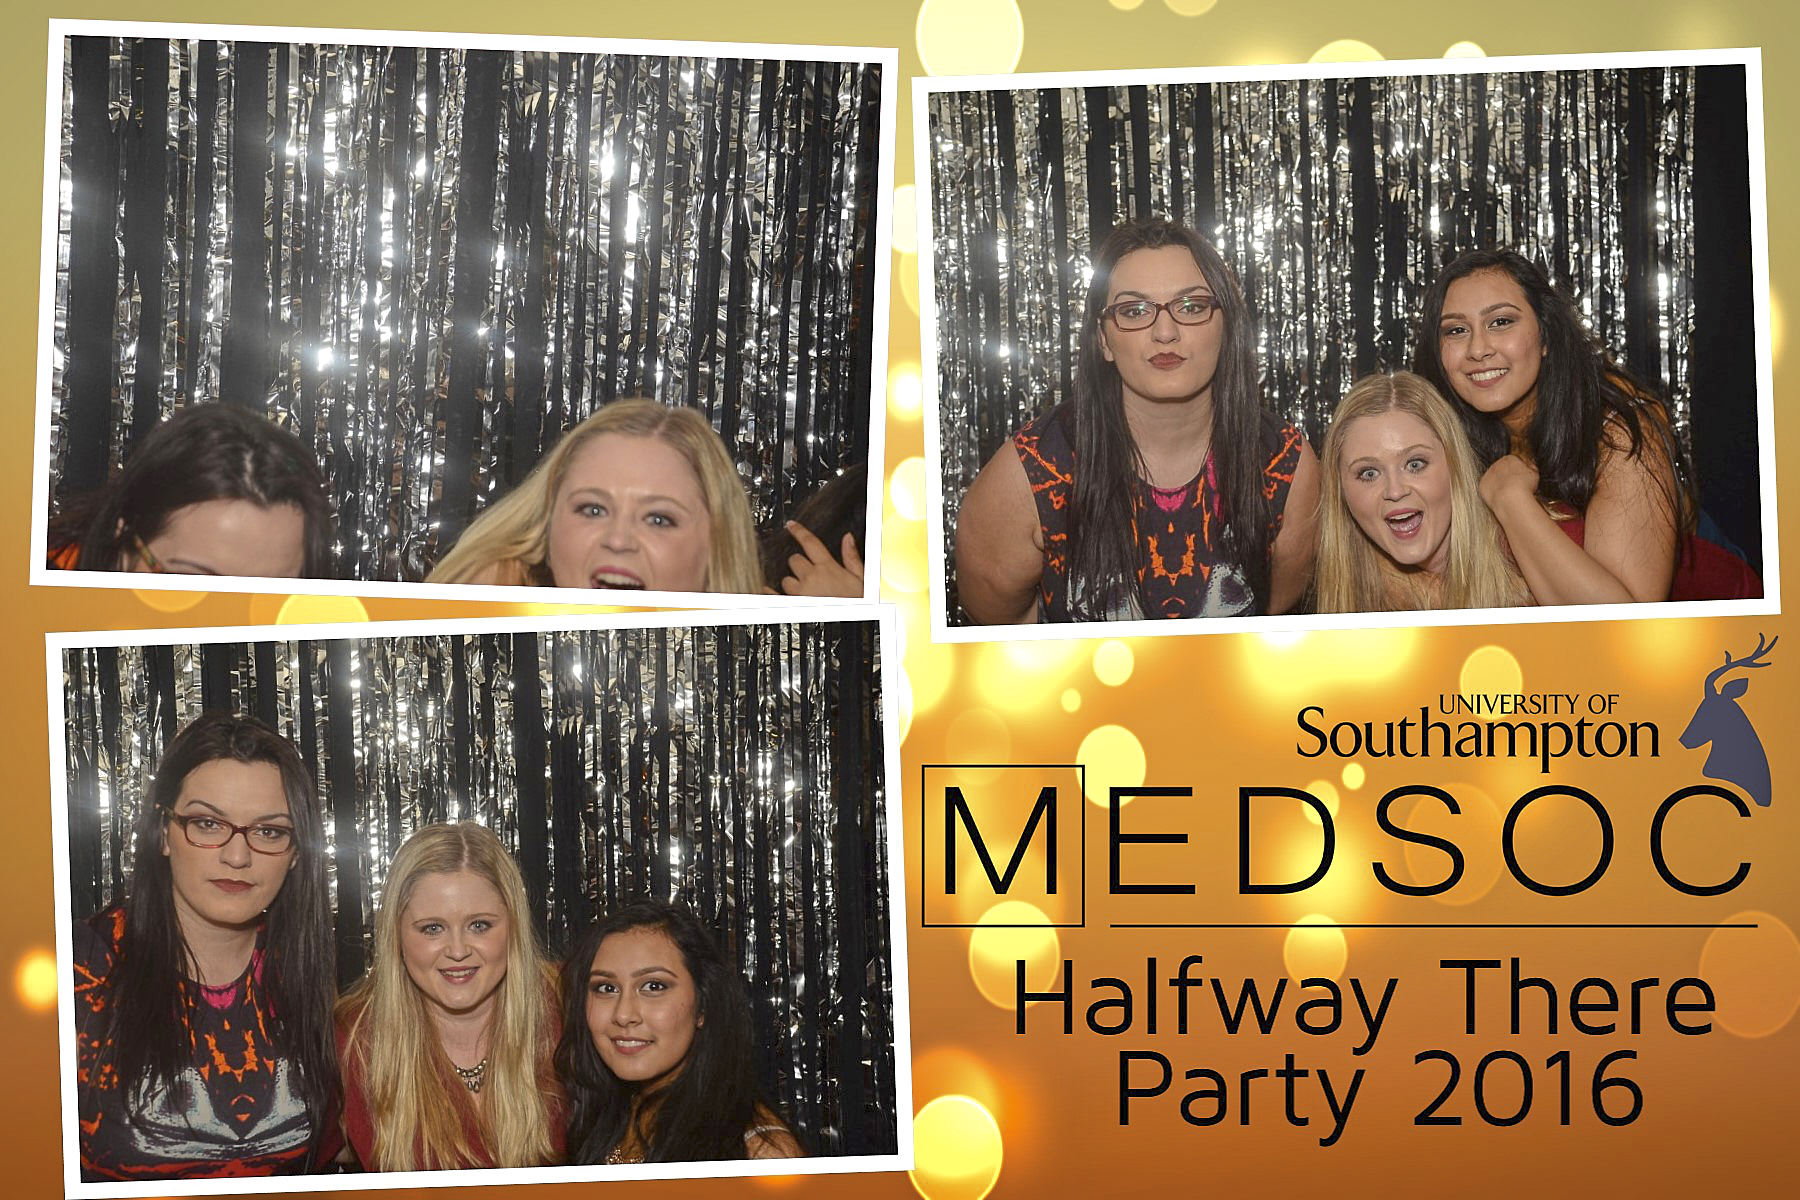 MedSoc Halfway There Party 2016 DS010311.jpg